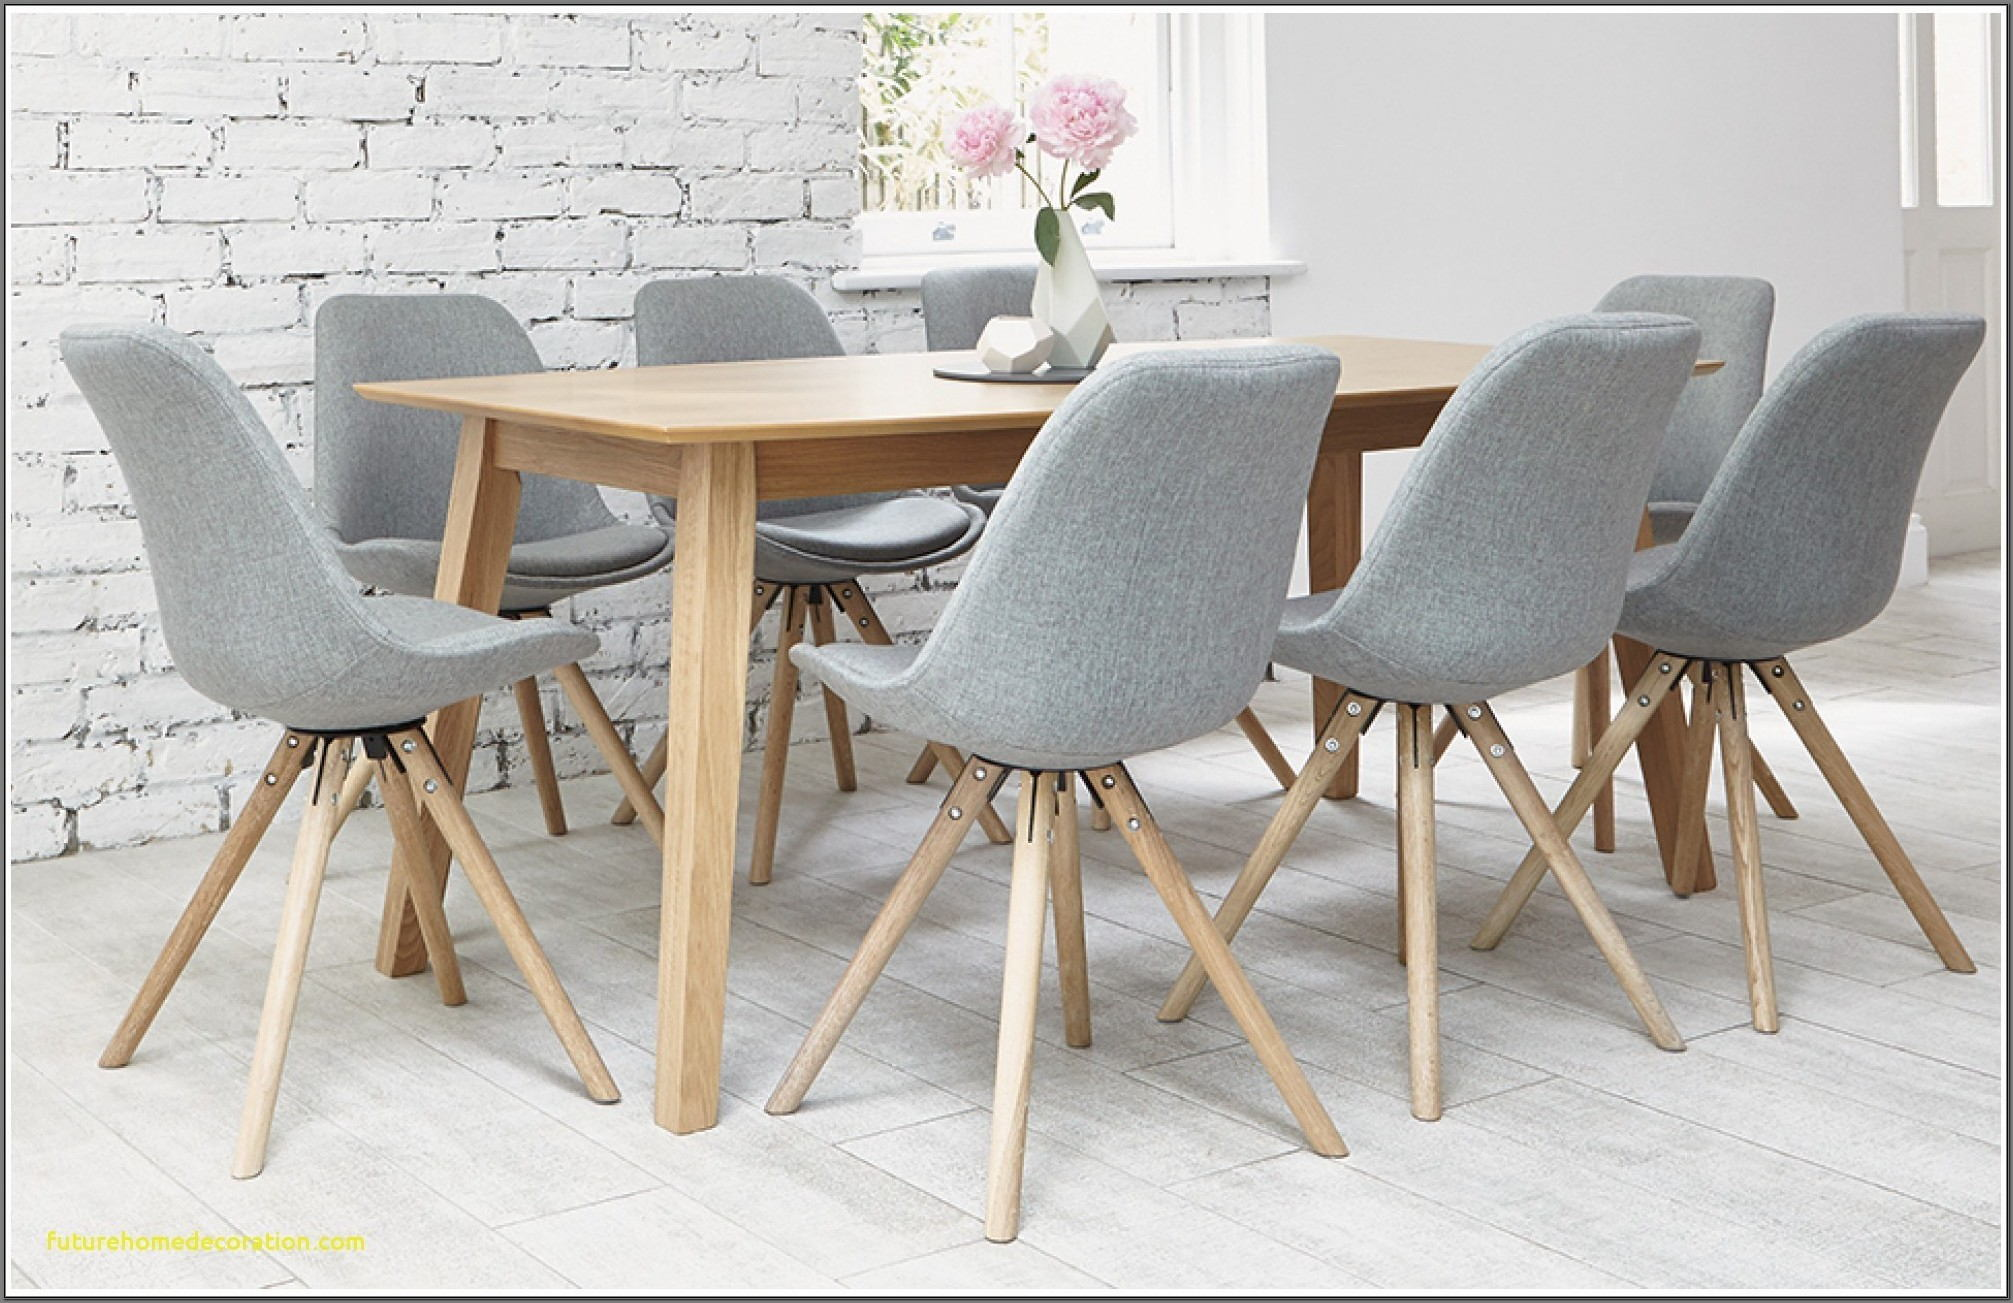 8 Seater Dining Room Table And Chairs